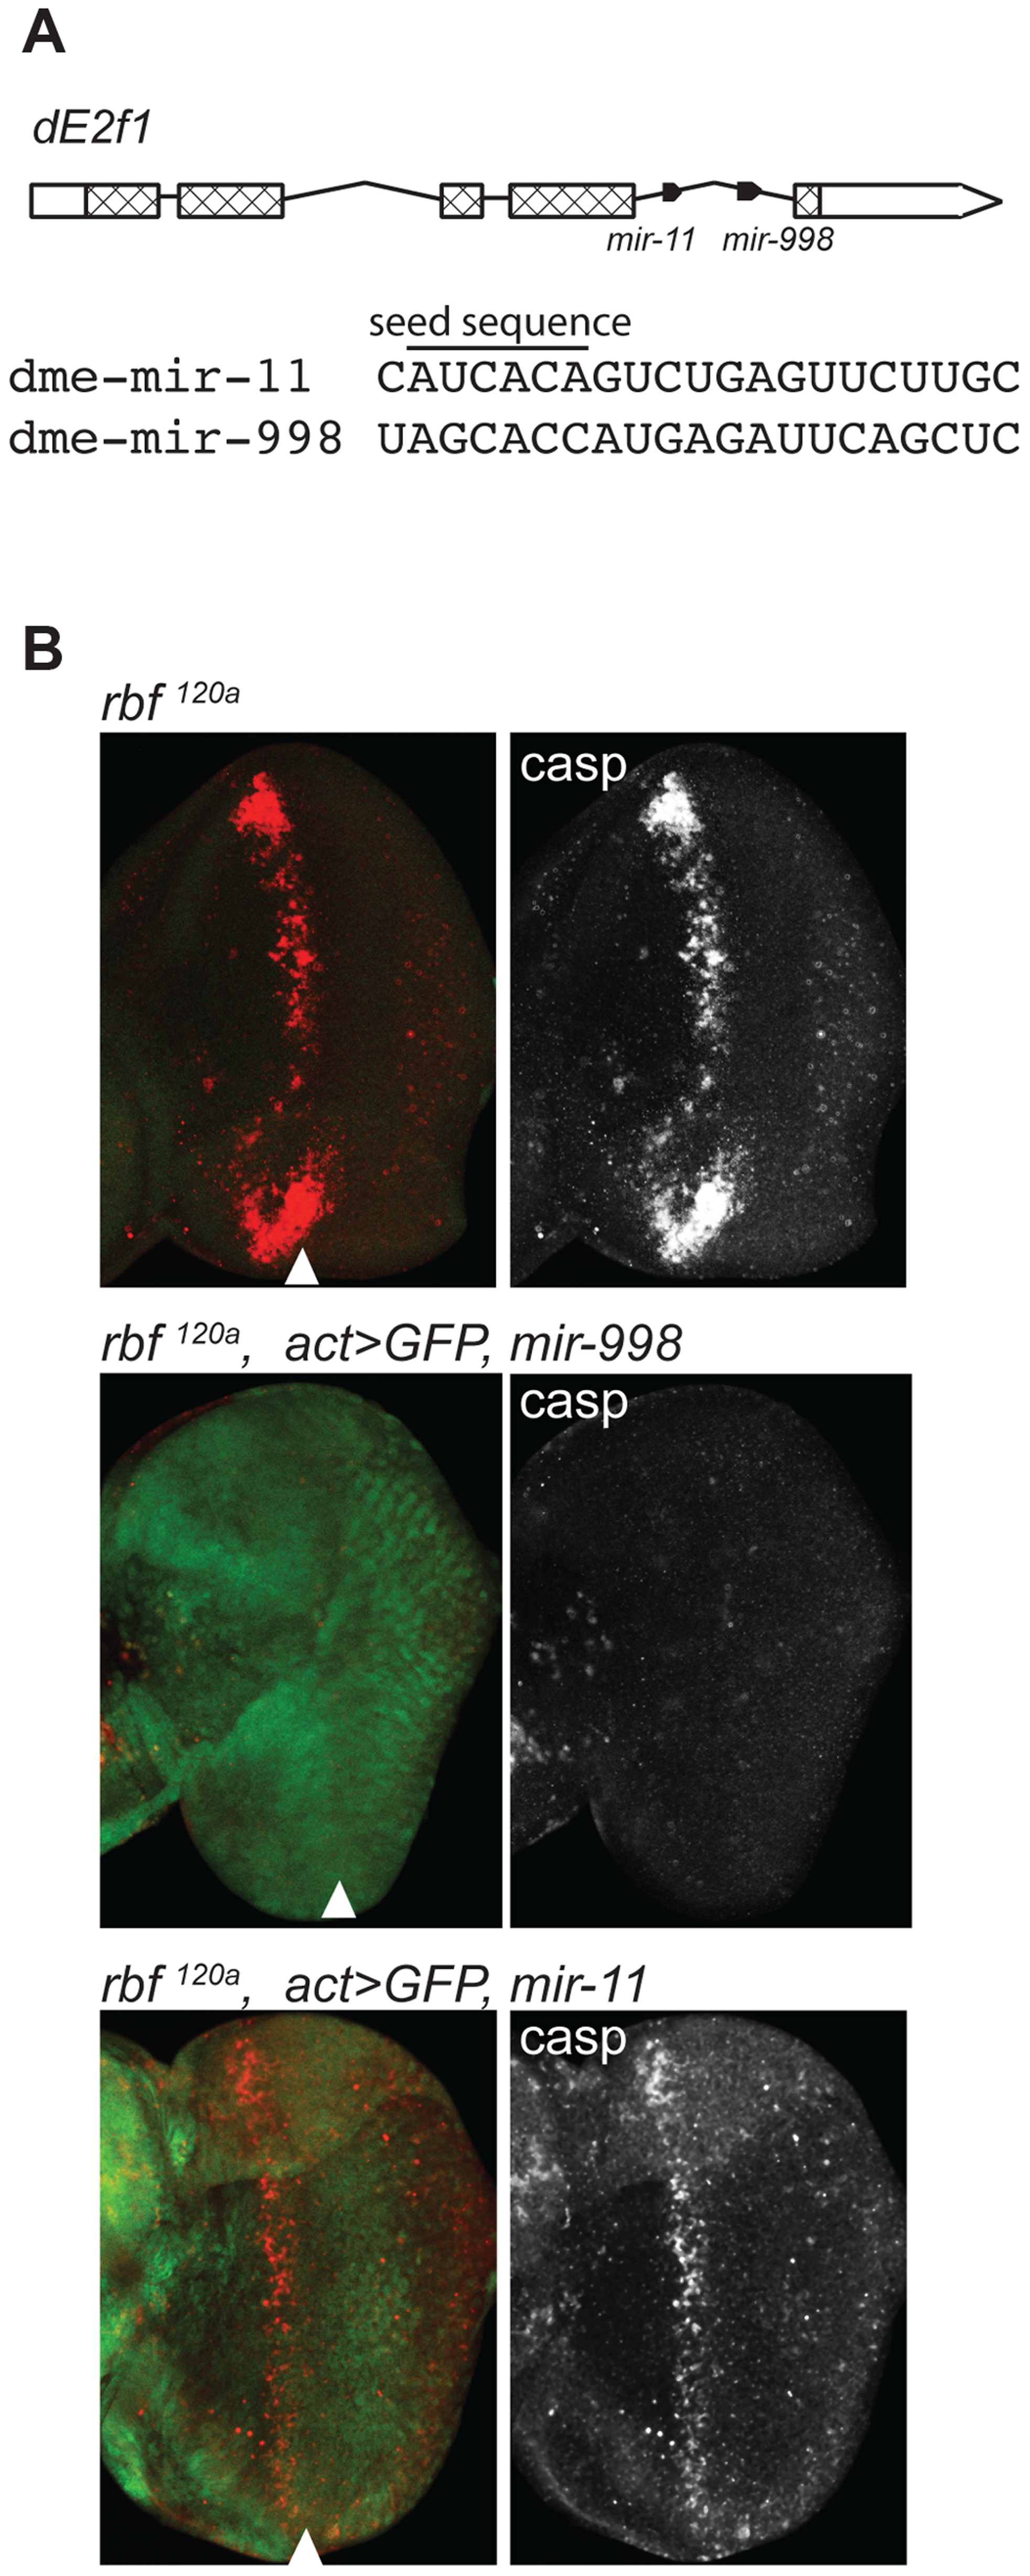 miR-998 limits dE2F1-dependent cell death in <i>rbf1<sup>120a</sup></i> eye discs.